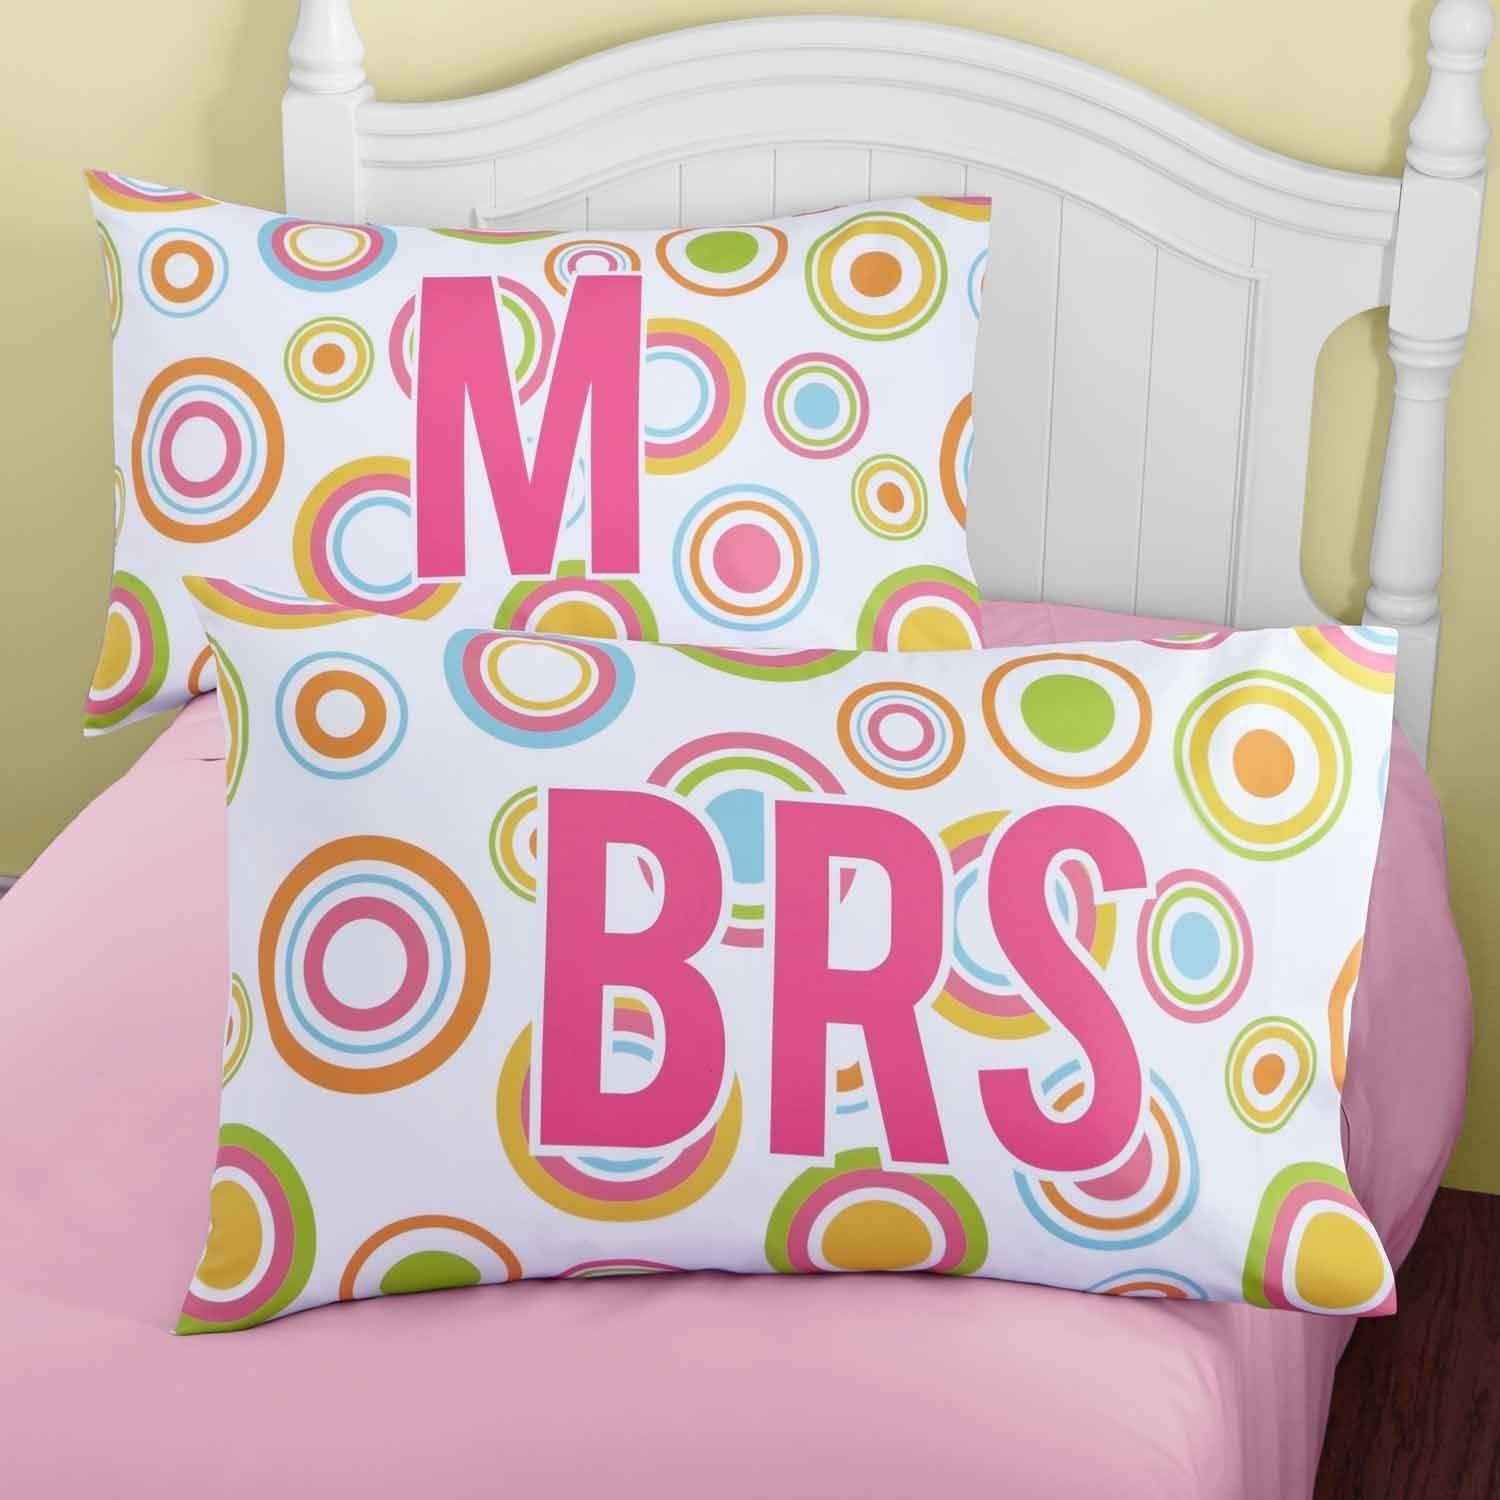 Personalized Circles Of Fun Pillowcase, Monogram